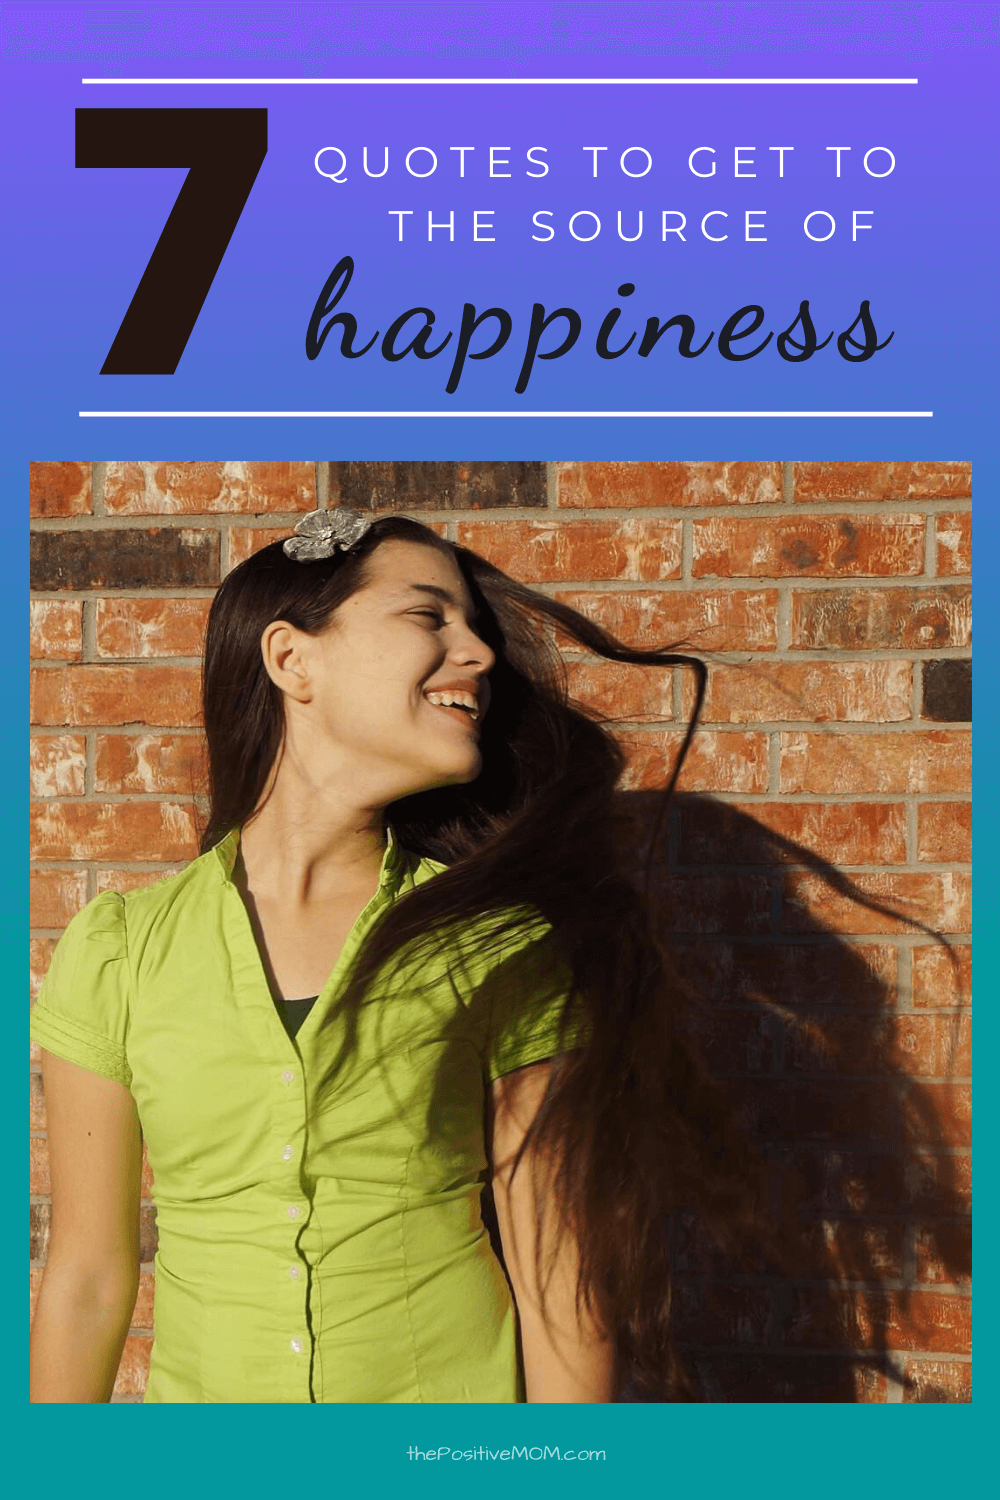 Finding Happiness : 7 quotes to get to the source of happiness